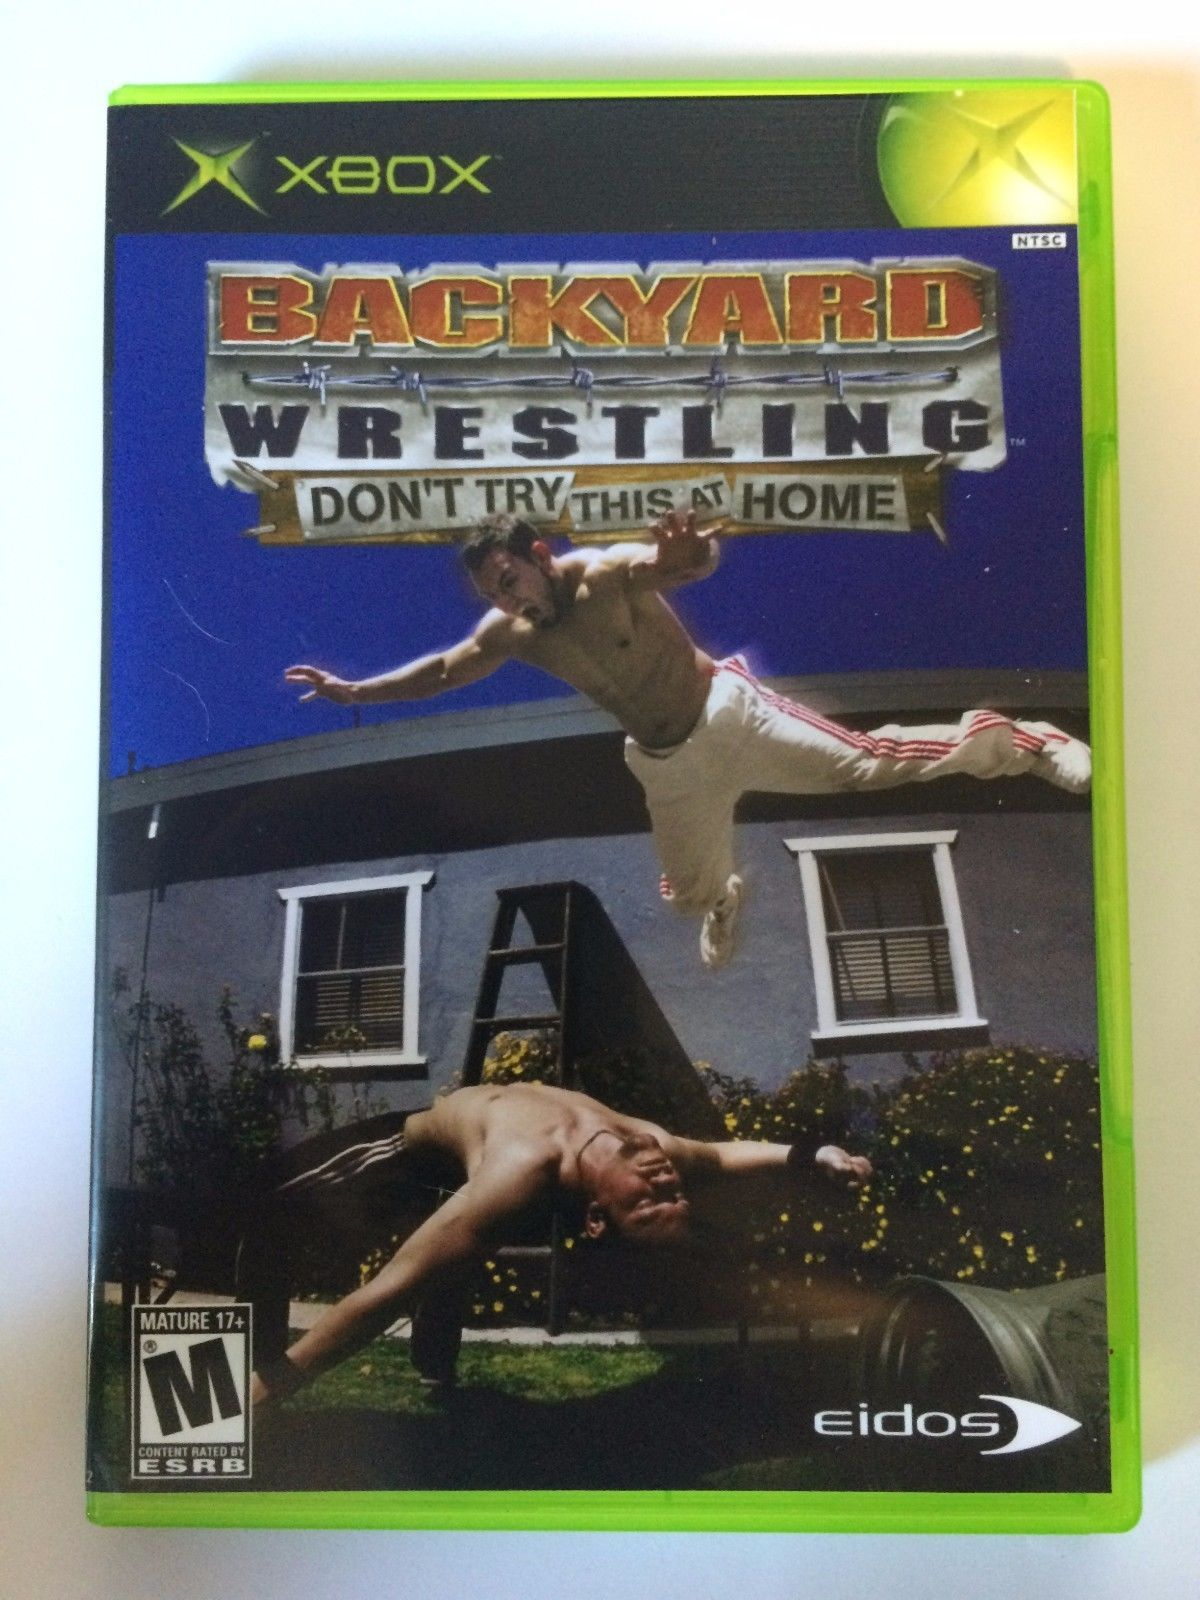 Backyard Wrestling - Xbox - Replacement Case - No Game